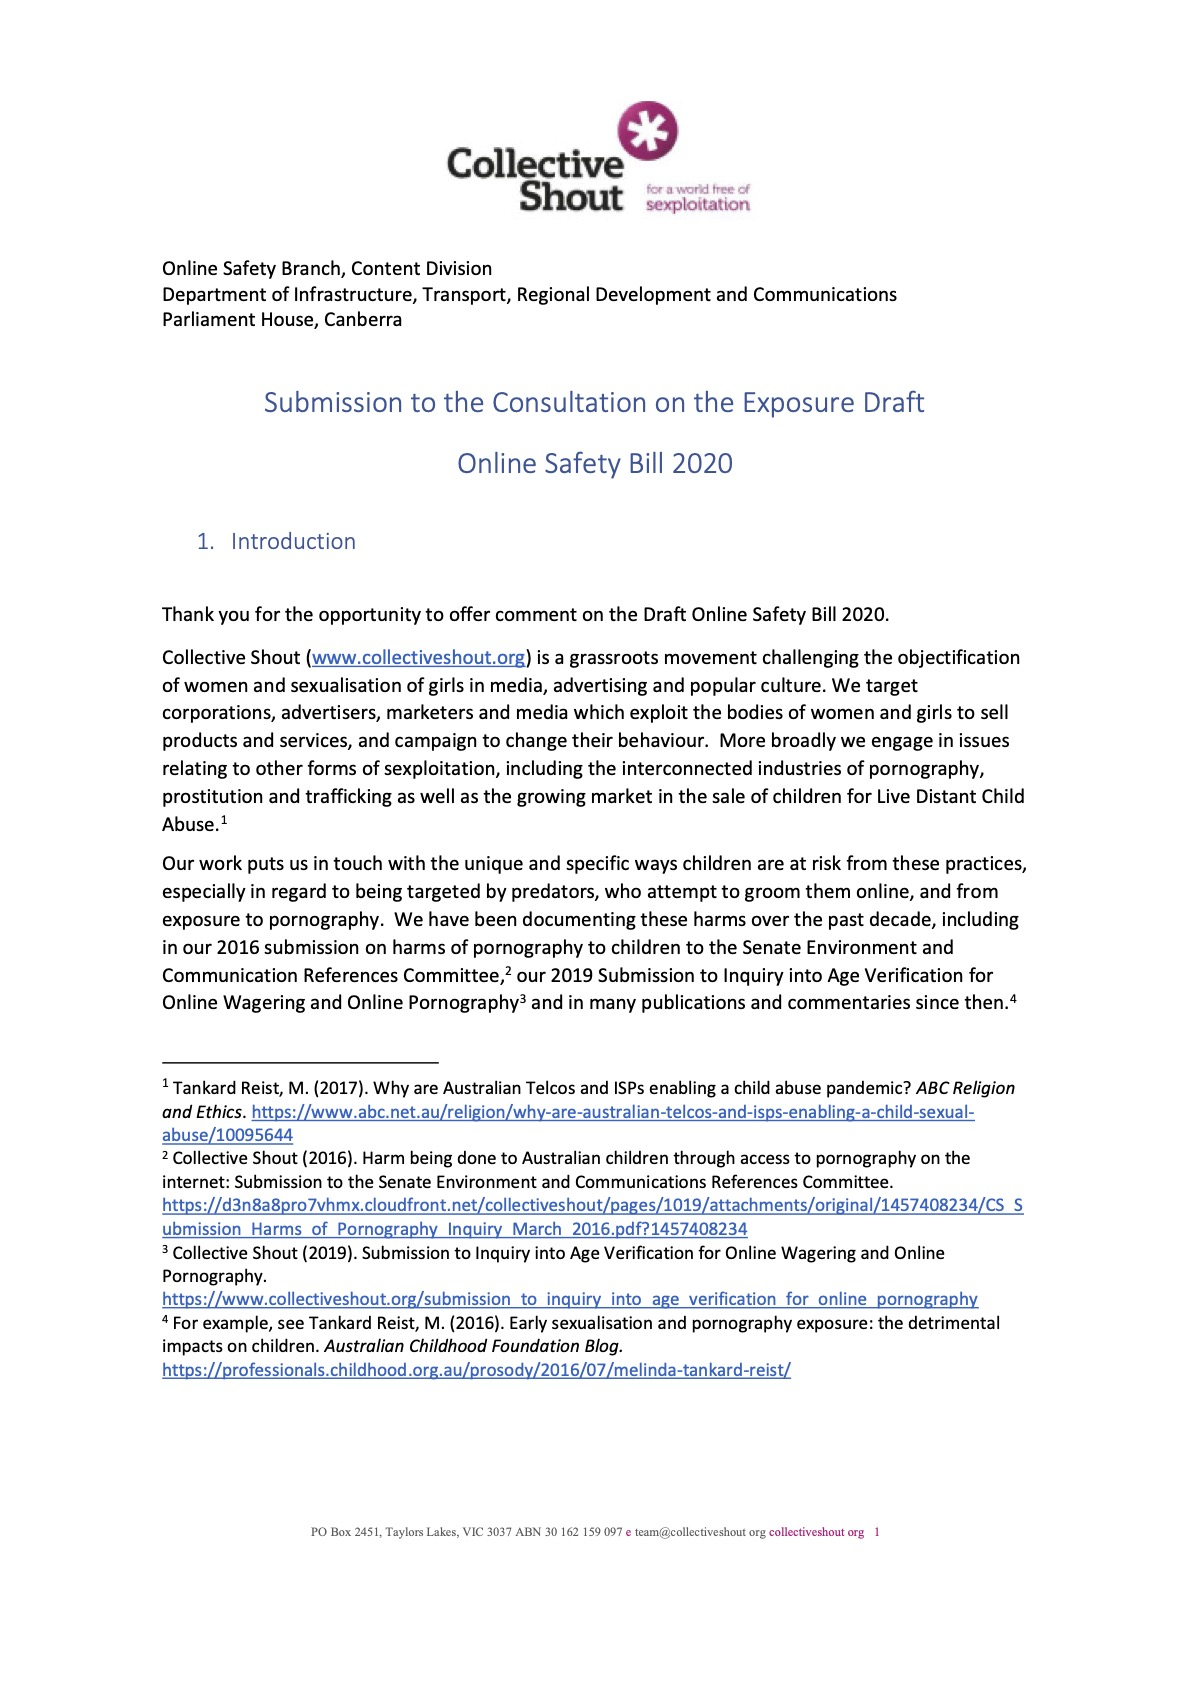 Collective_Shout_Submission_Consultation_Exposure_Draft_Online_Safety_Bill_2020_1.jpg